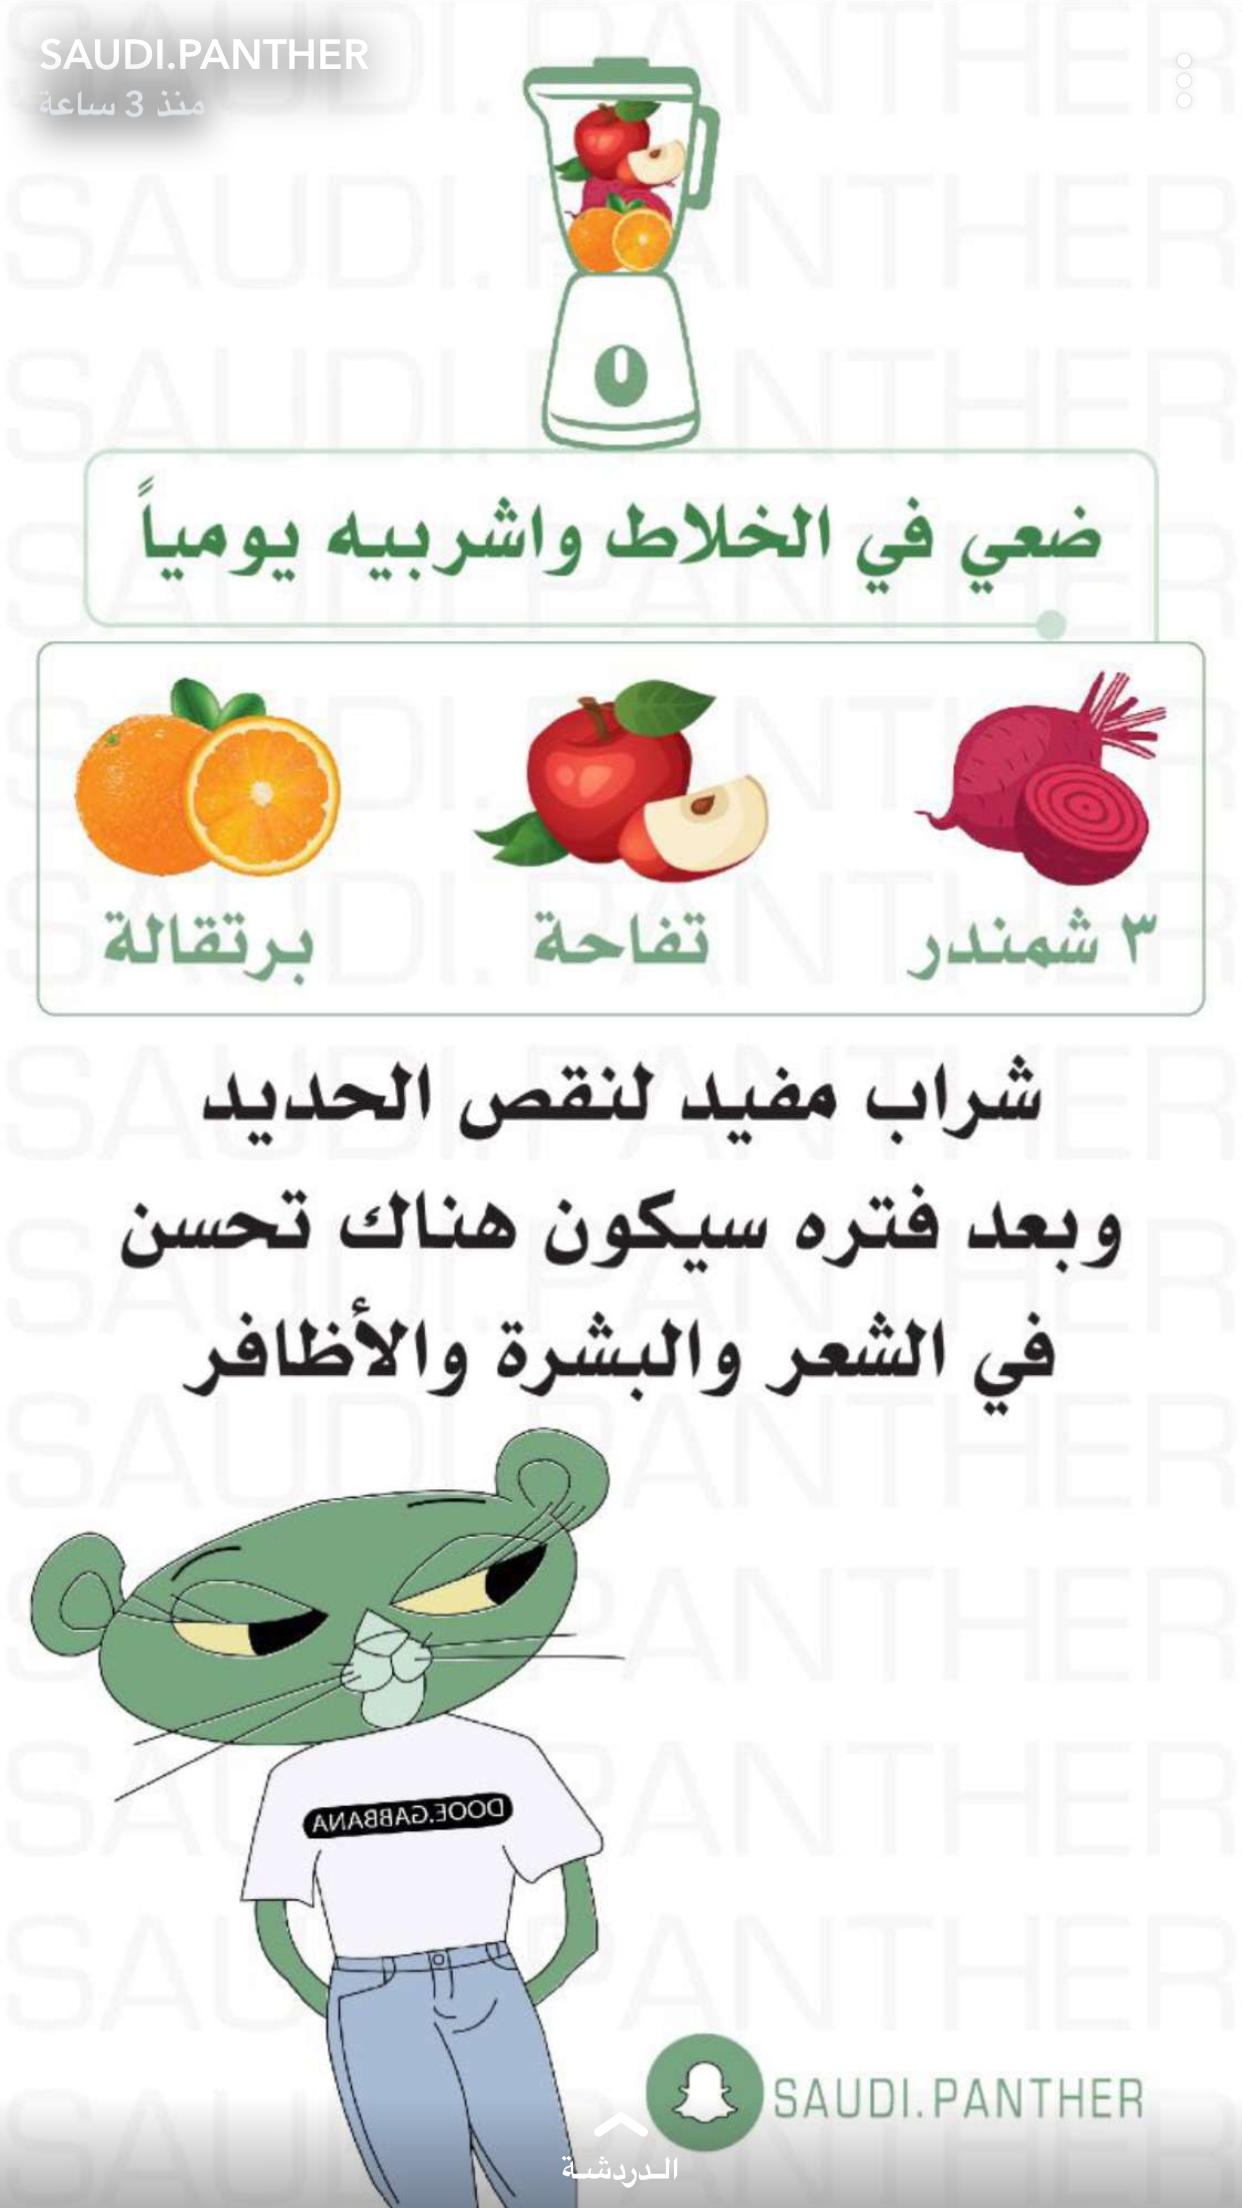 Pin By Alaa Yehia On Green Panther Health Facts Food Health Fitness Nutrition Health And Fitness Expo